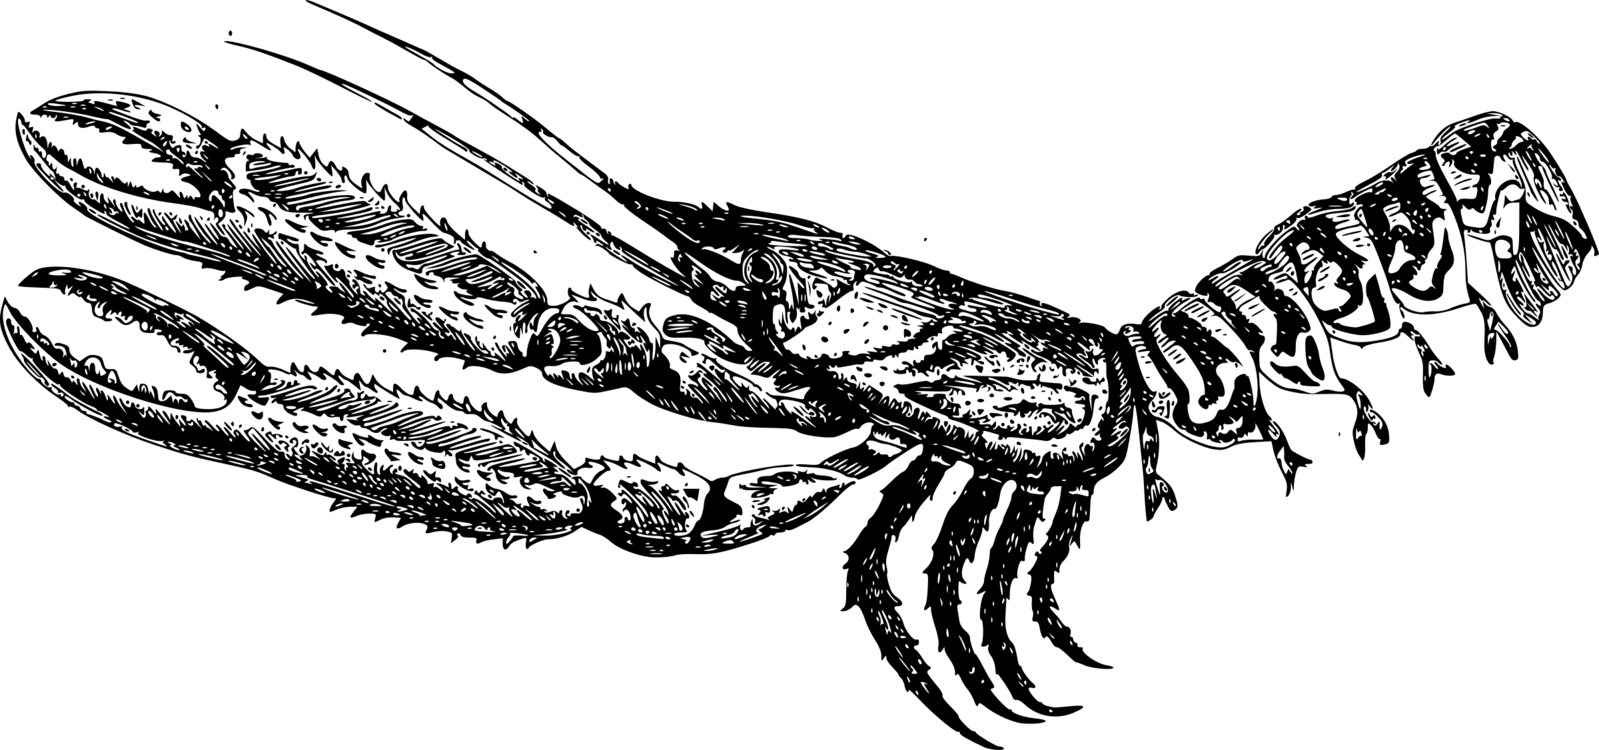 hight resolution of crab lobster decapods animal m 02csf